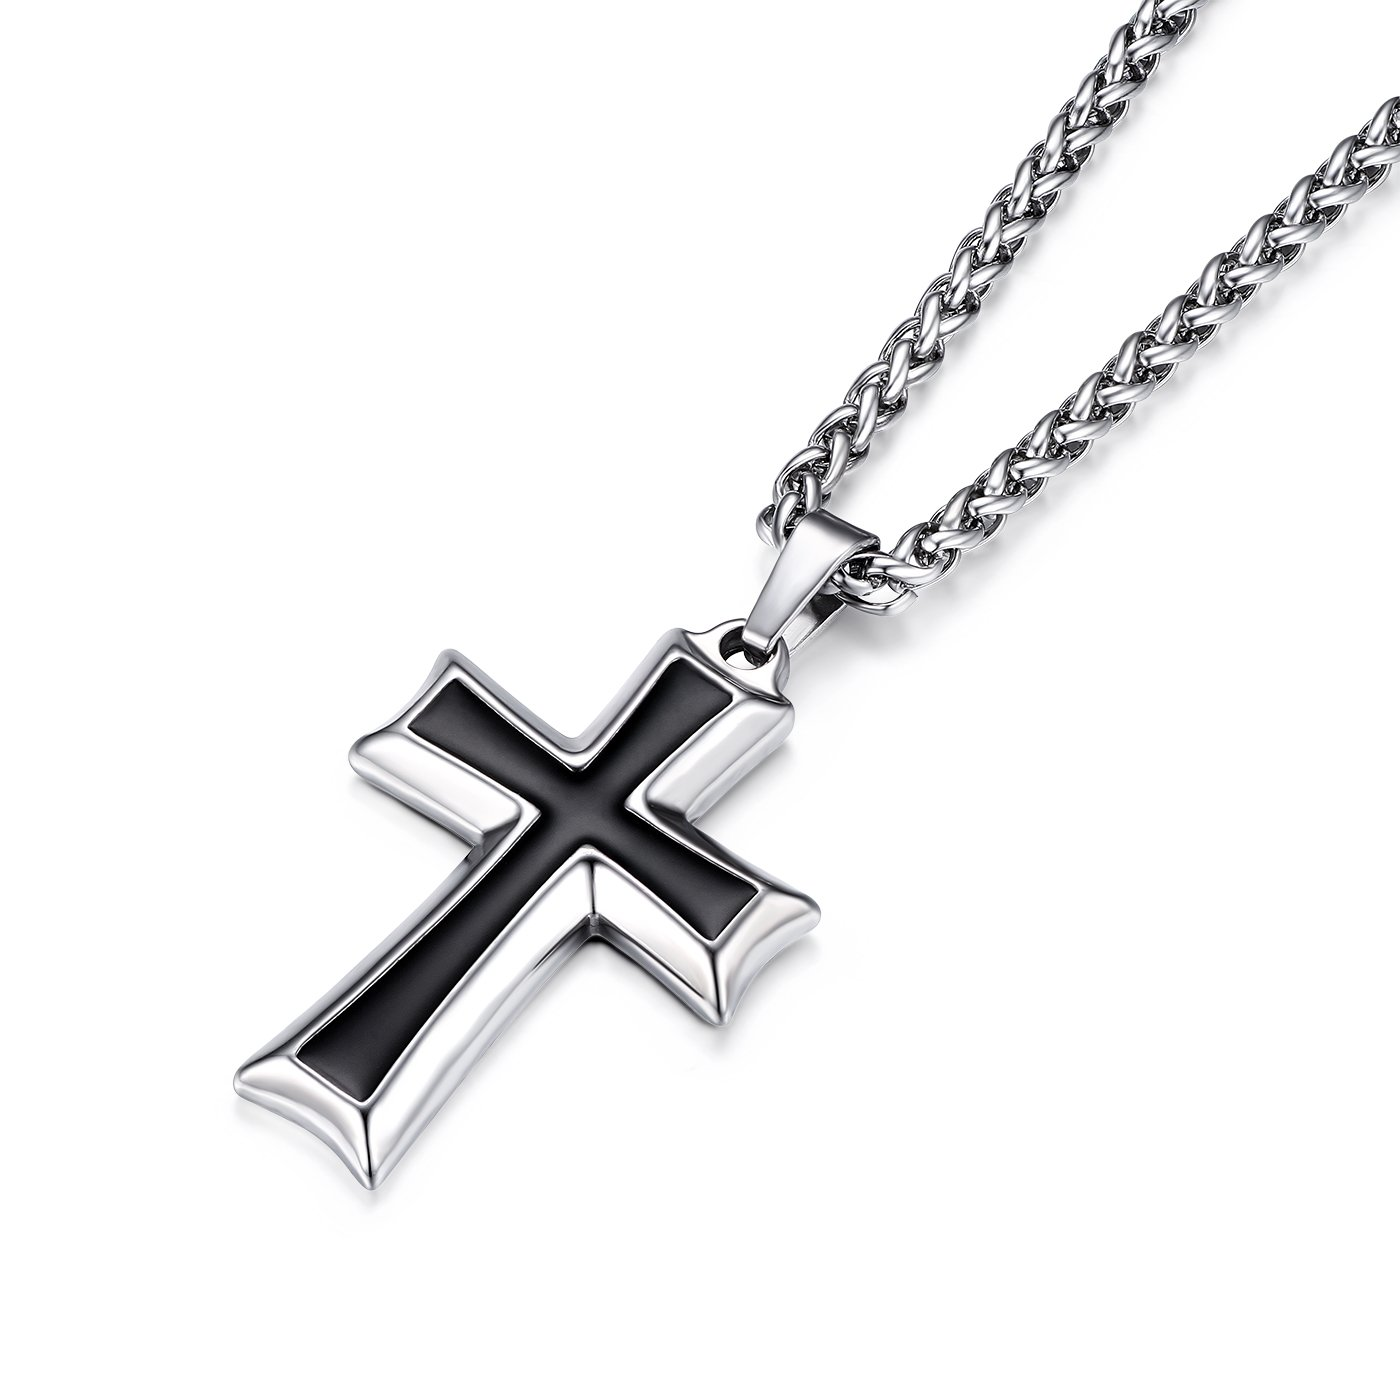 HZMAN Mens Stainless Steel Cross Pendant Necklace Flower Basket Chain (Silver)